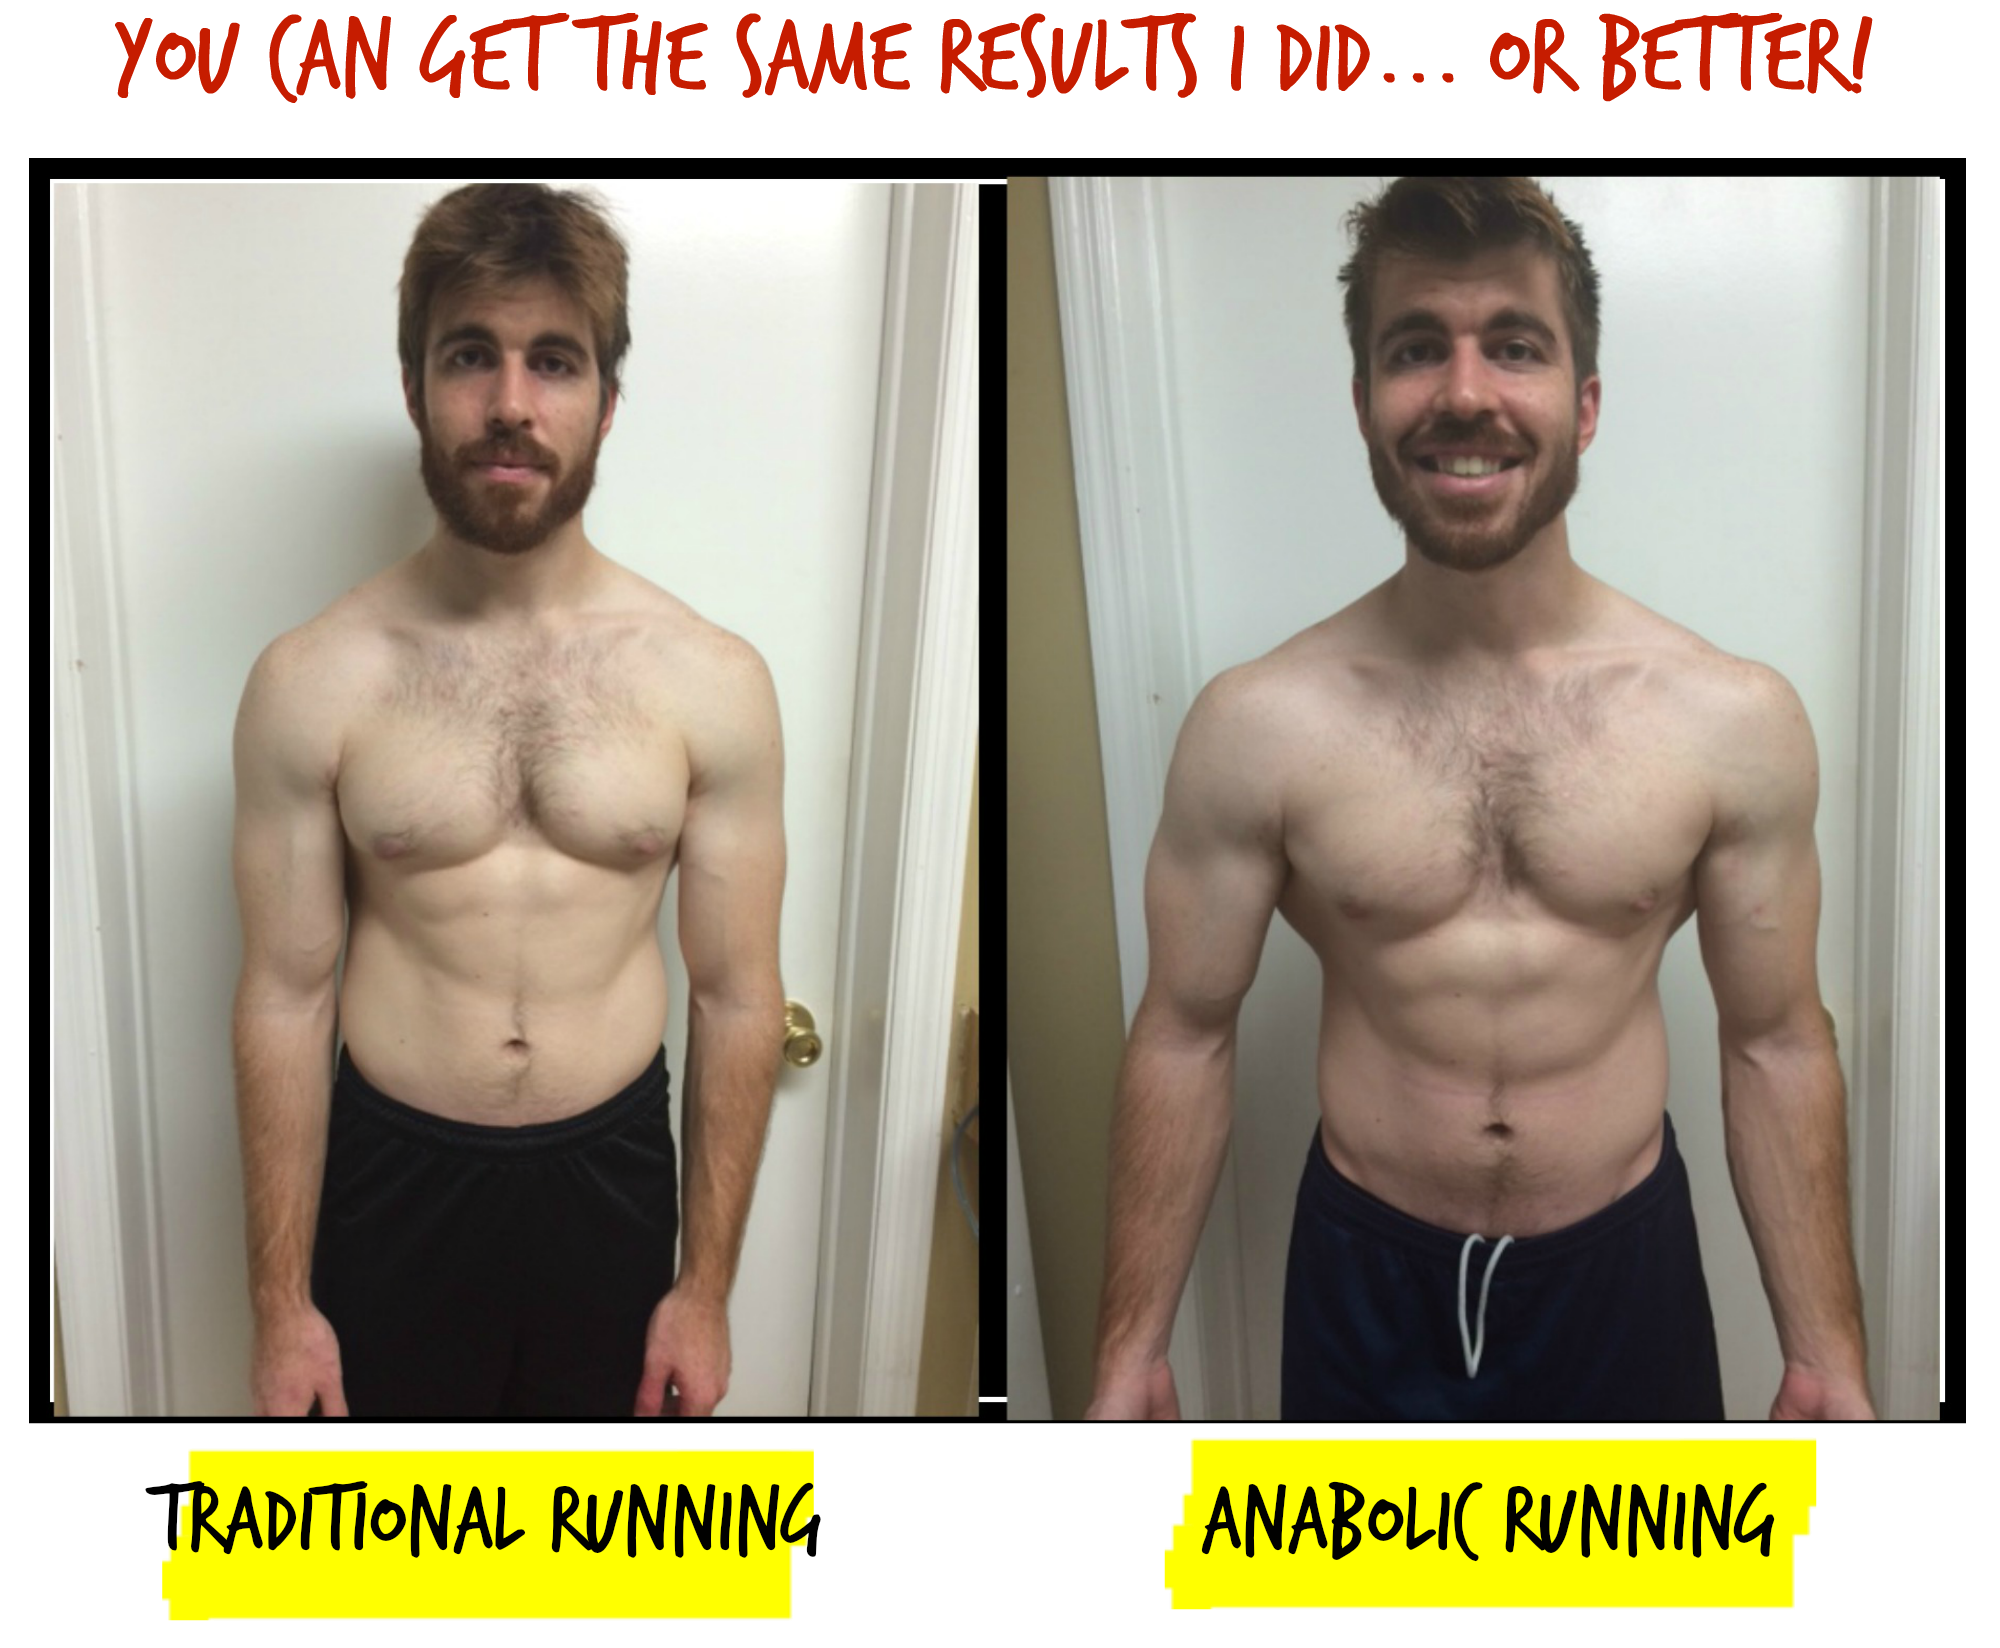 JOES RESULTS - Anabolic Running